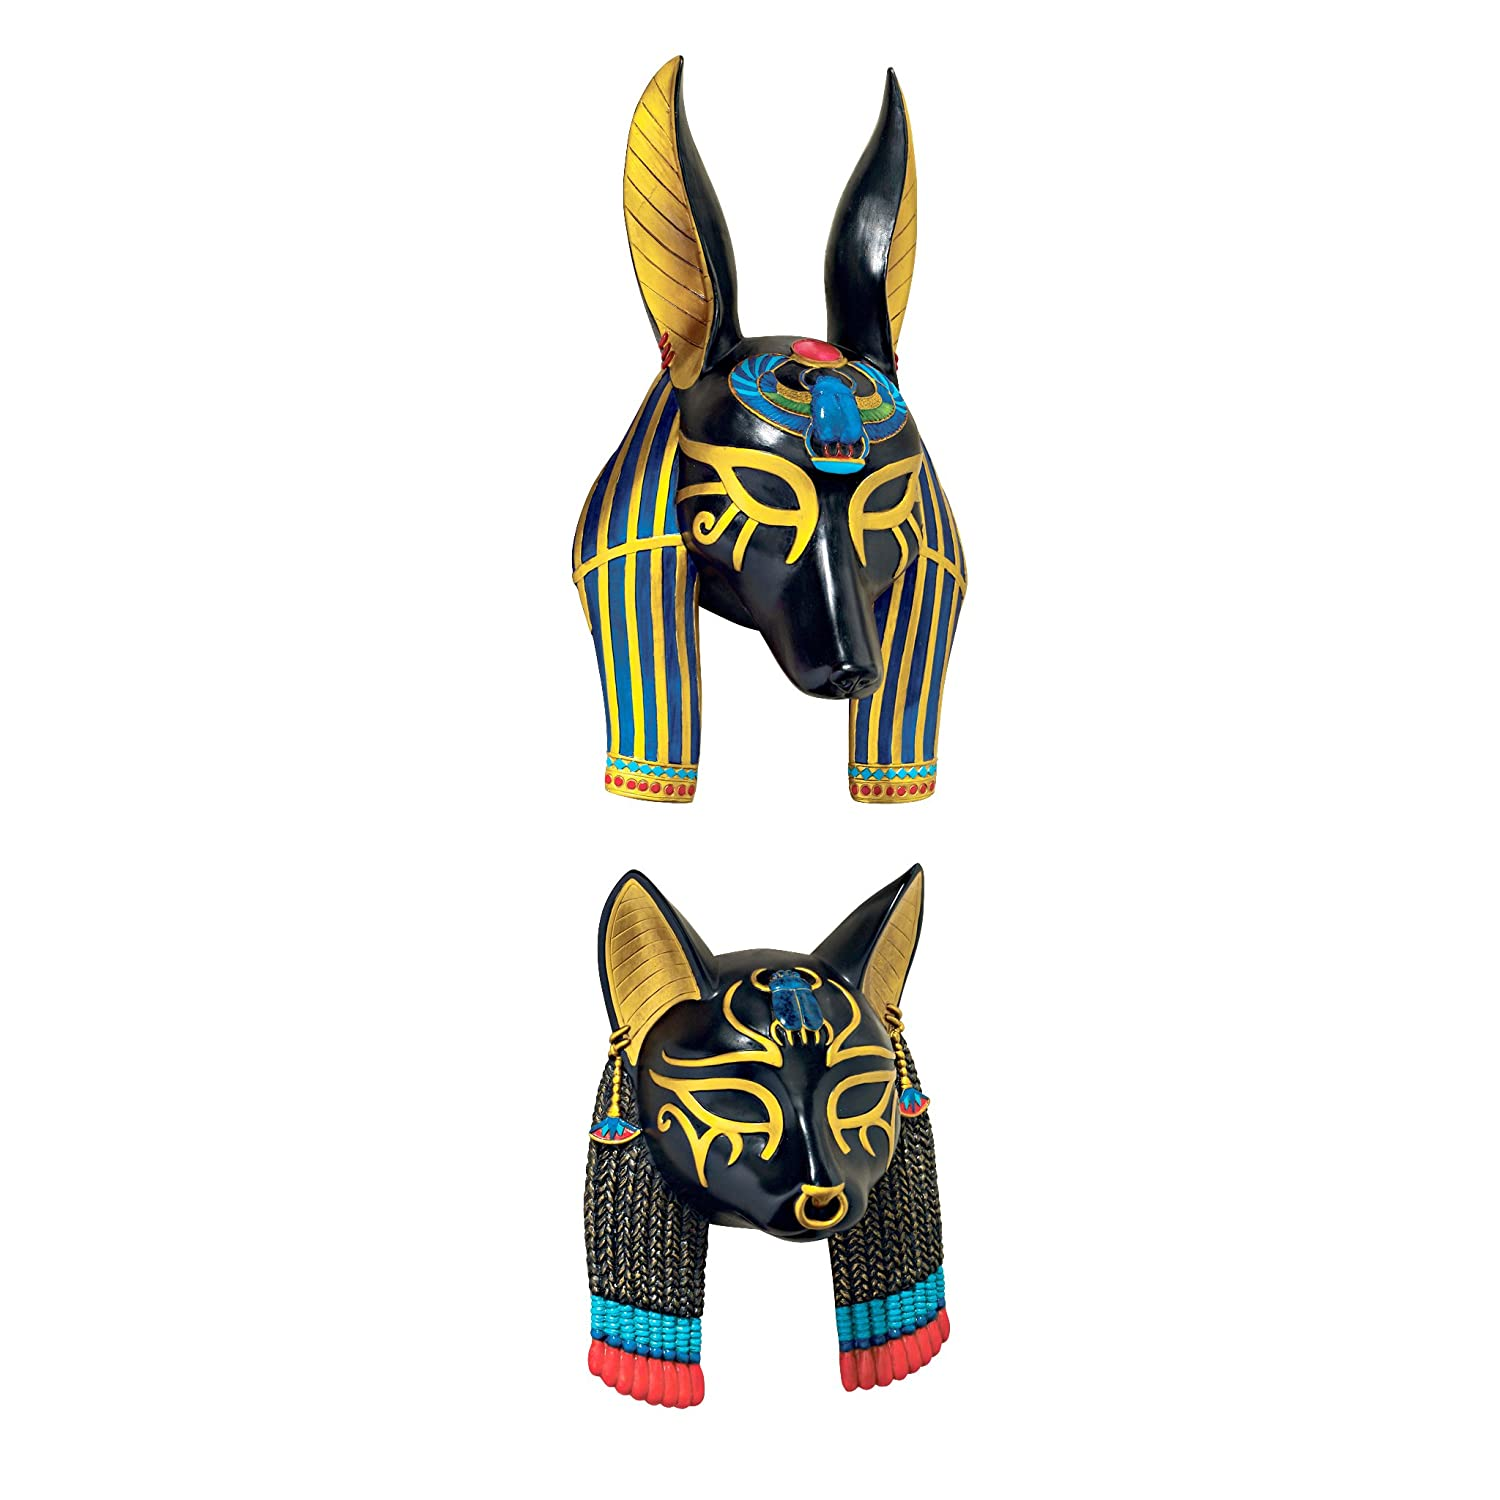 Amazon.com: Design Toscano Mask of Ancient Egyptian God Bastet: Home & Kitchen